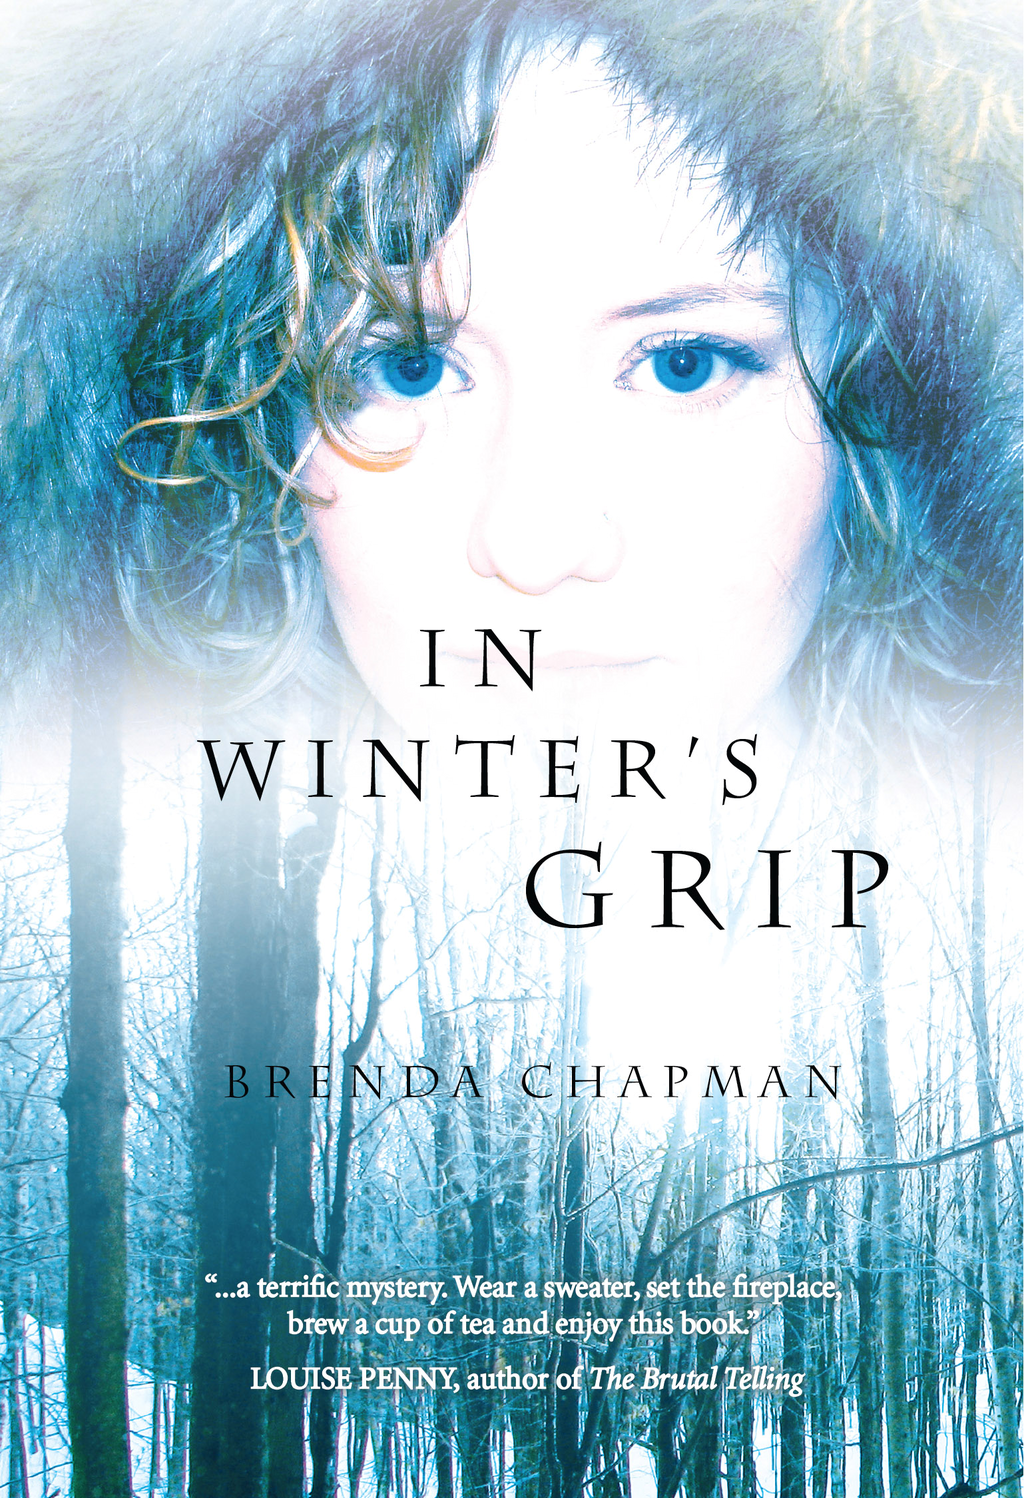 In Winter's Grip By: Brenda Chapman